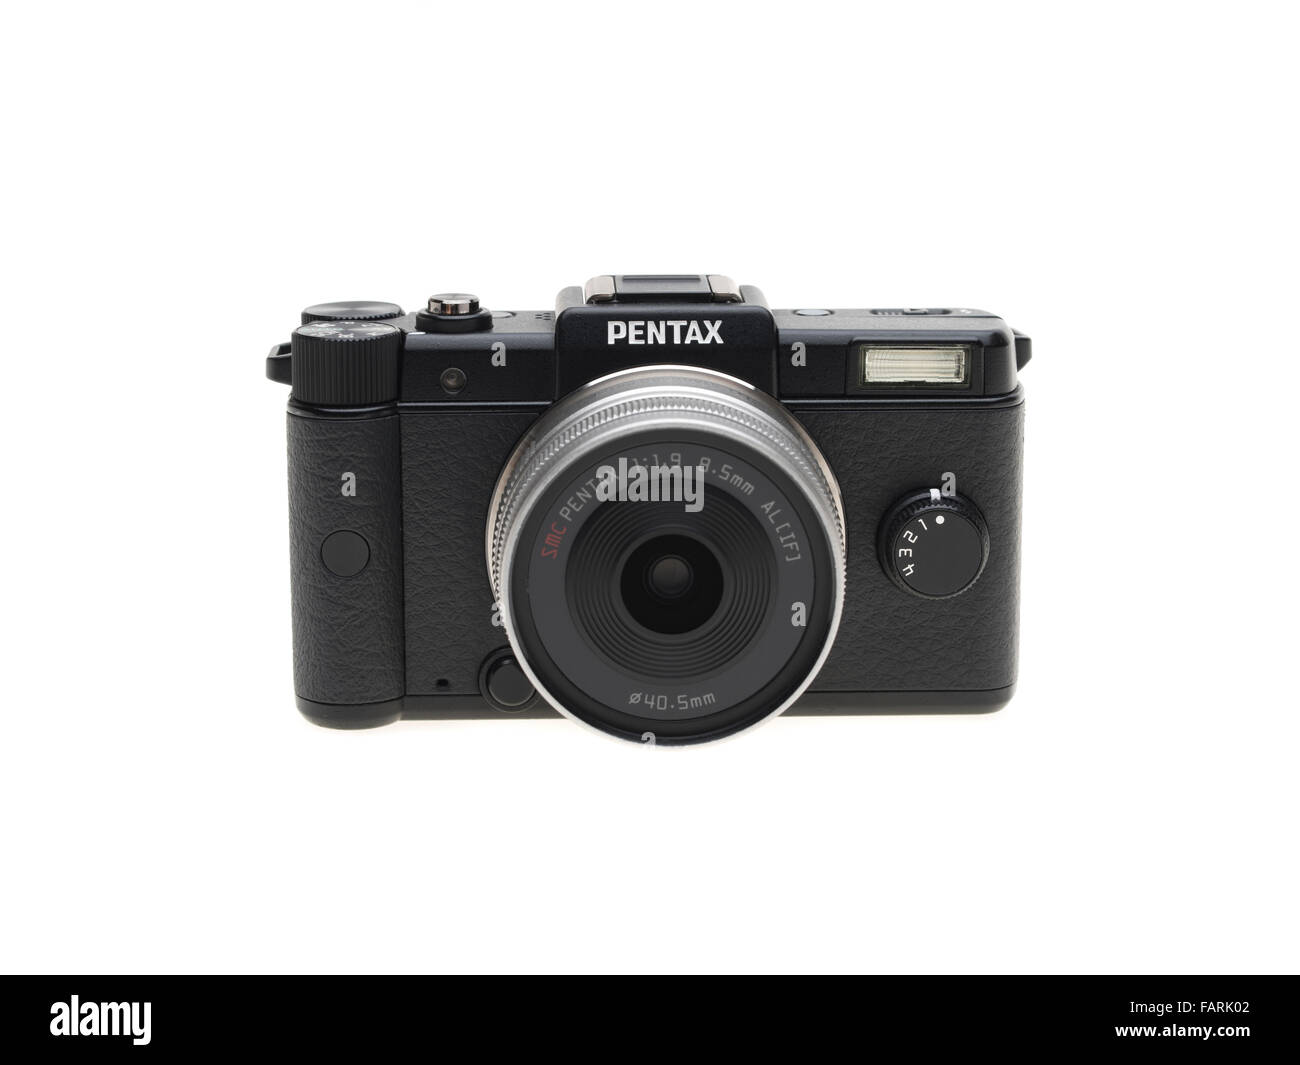 Pentax Q  a tiny mirrorless interchangeable-lens digital camera  introduced in 2011 - Stock Image